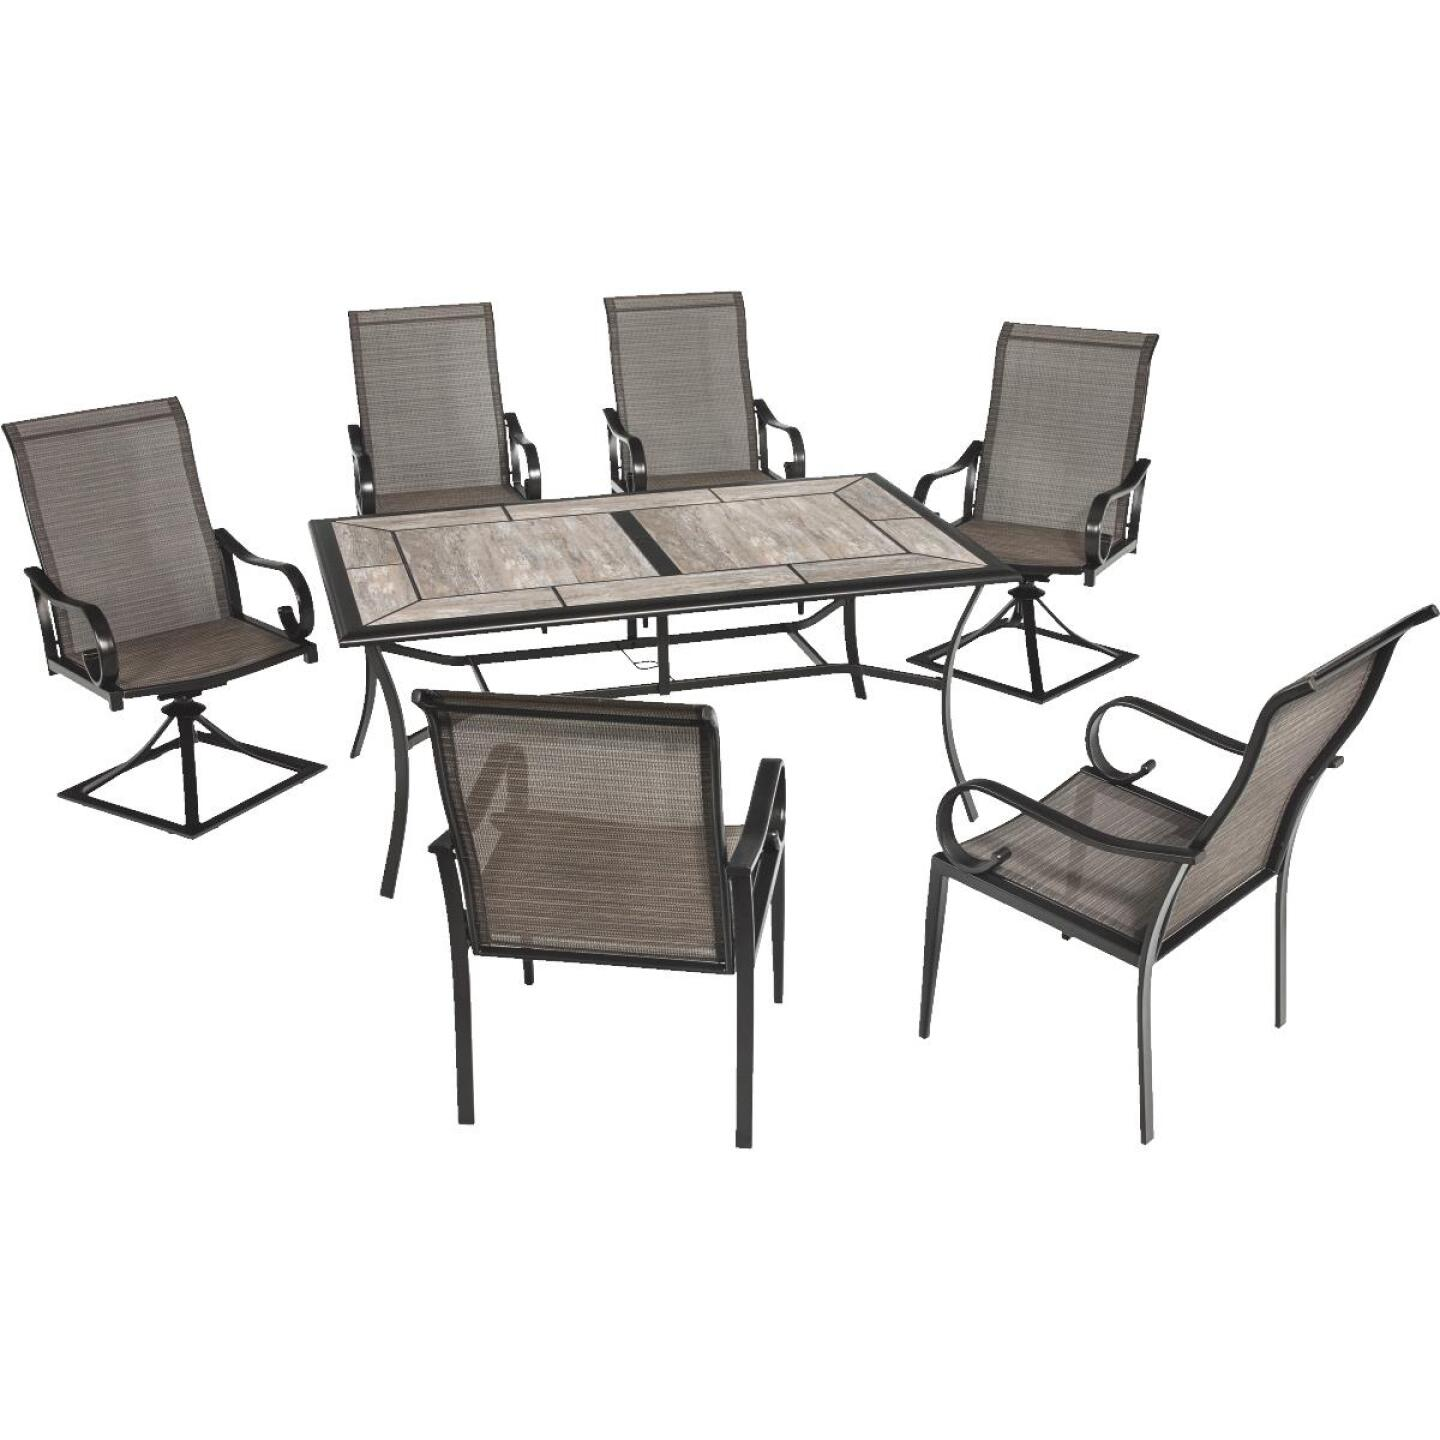 Outdoor Expressions Berkshire 7-Piece Dining Set Image 167